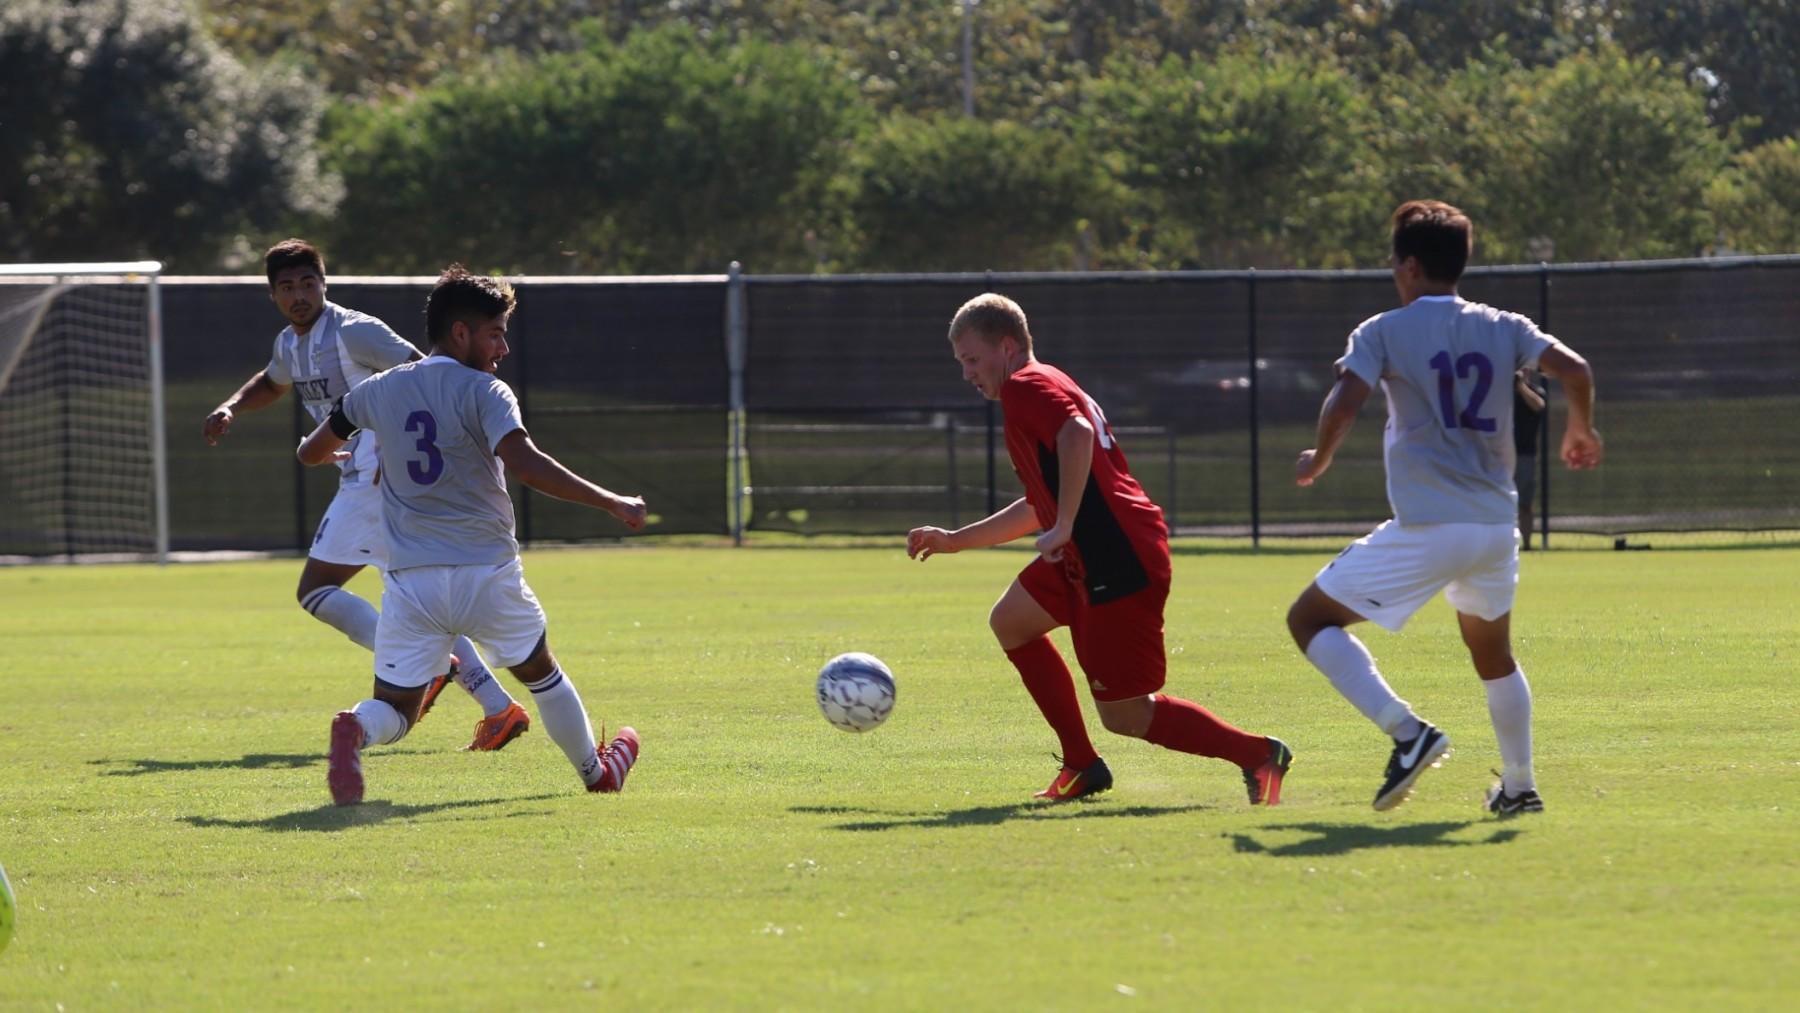 Espen Hansen will be one of 13 returnees for the UHV men's soccer team this season.